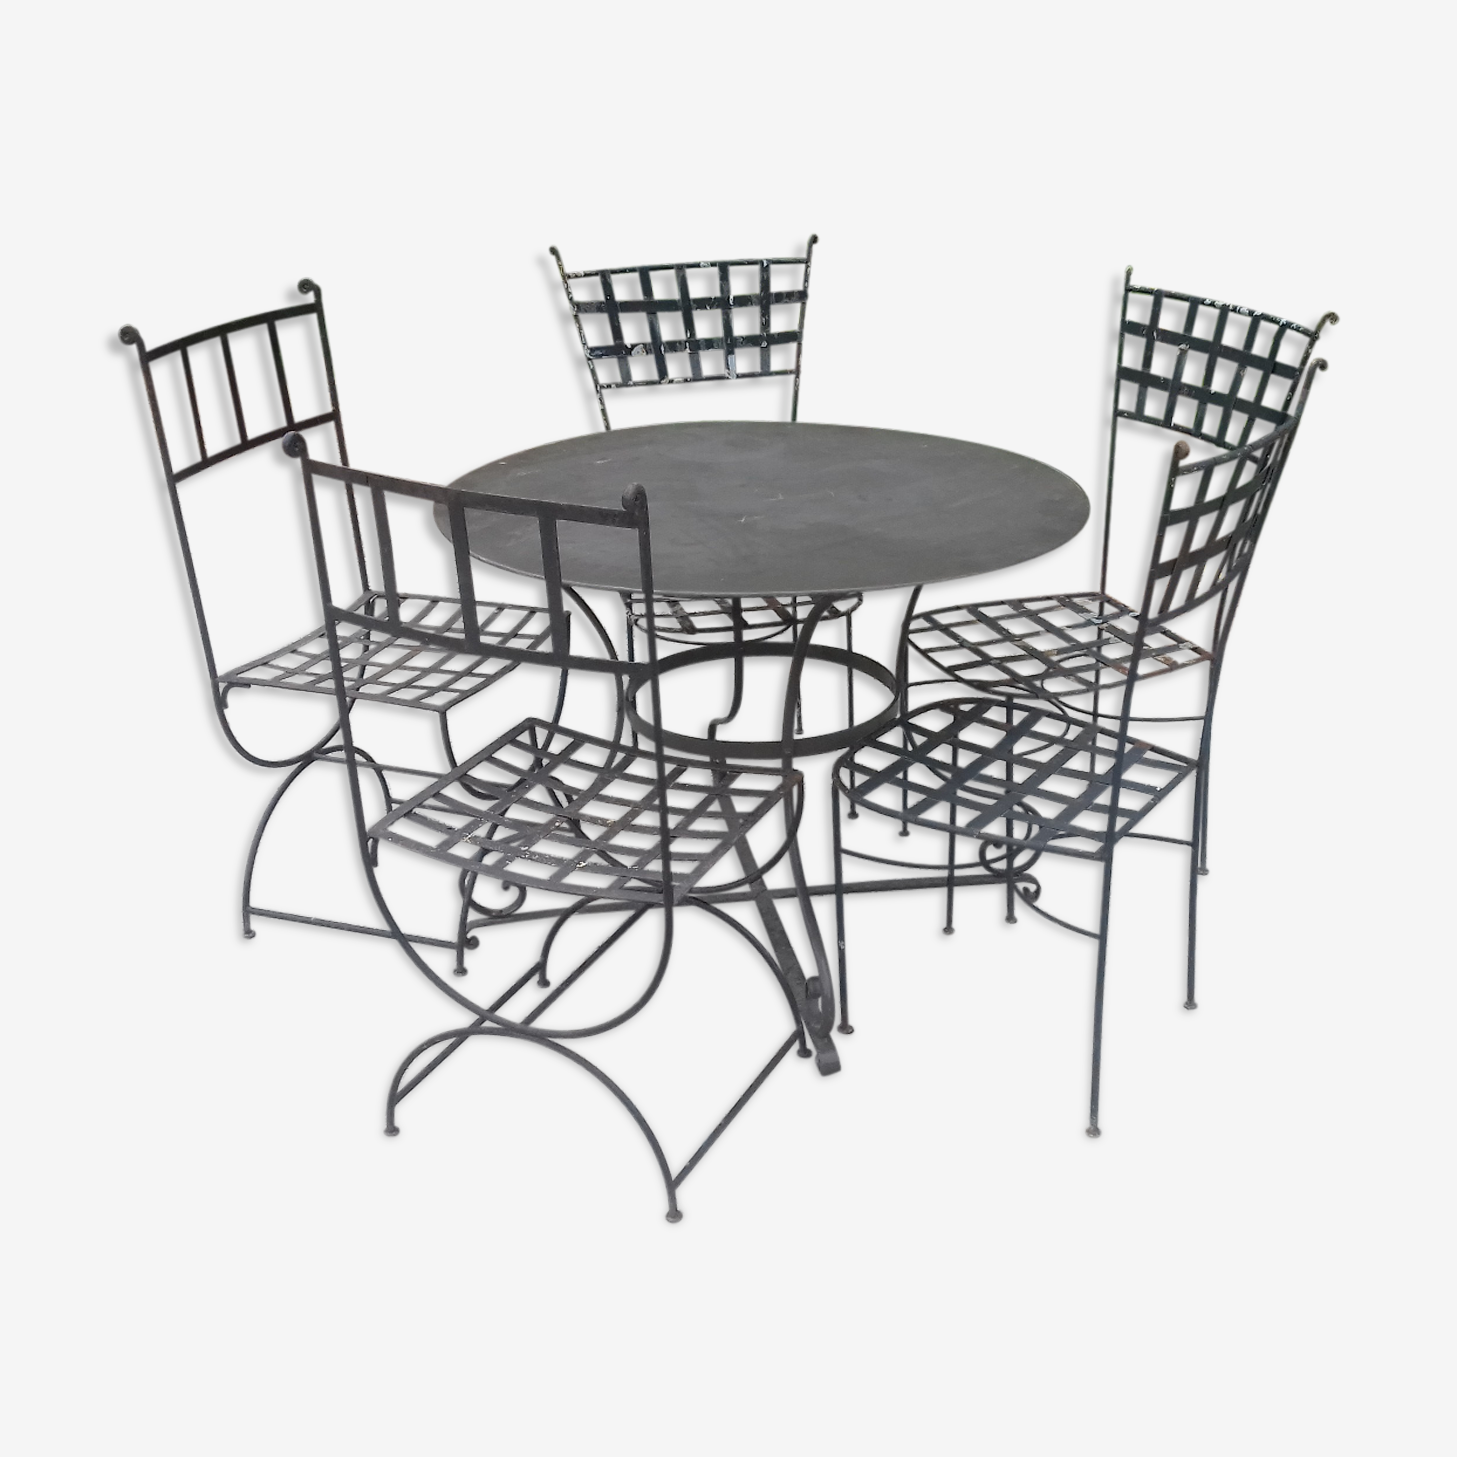 Garden furniture in wrought iron 1900